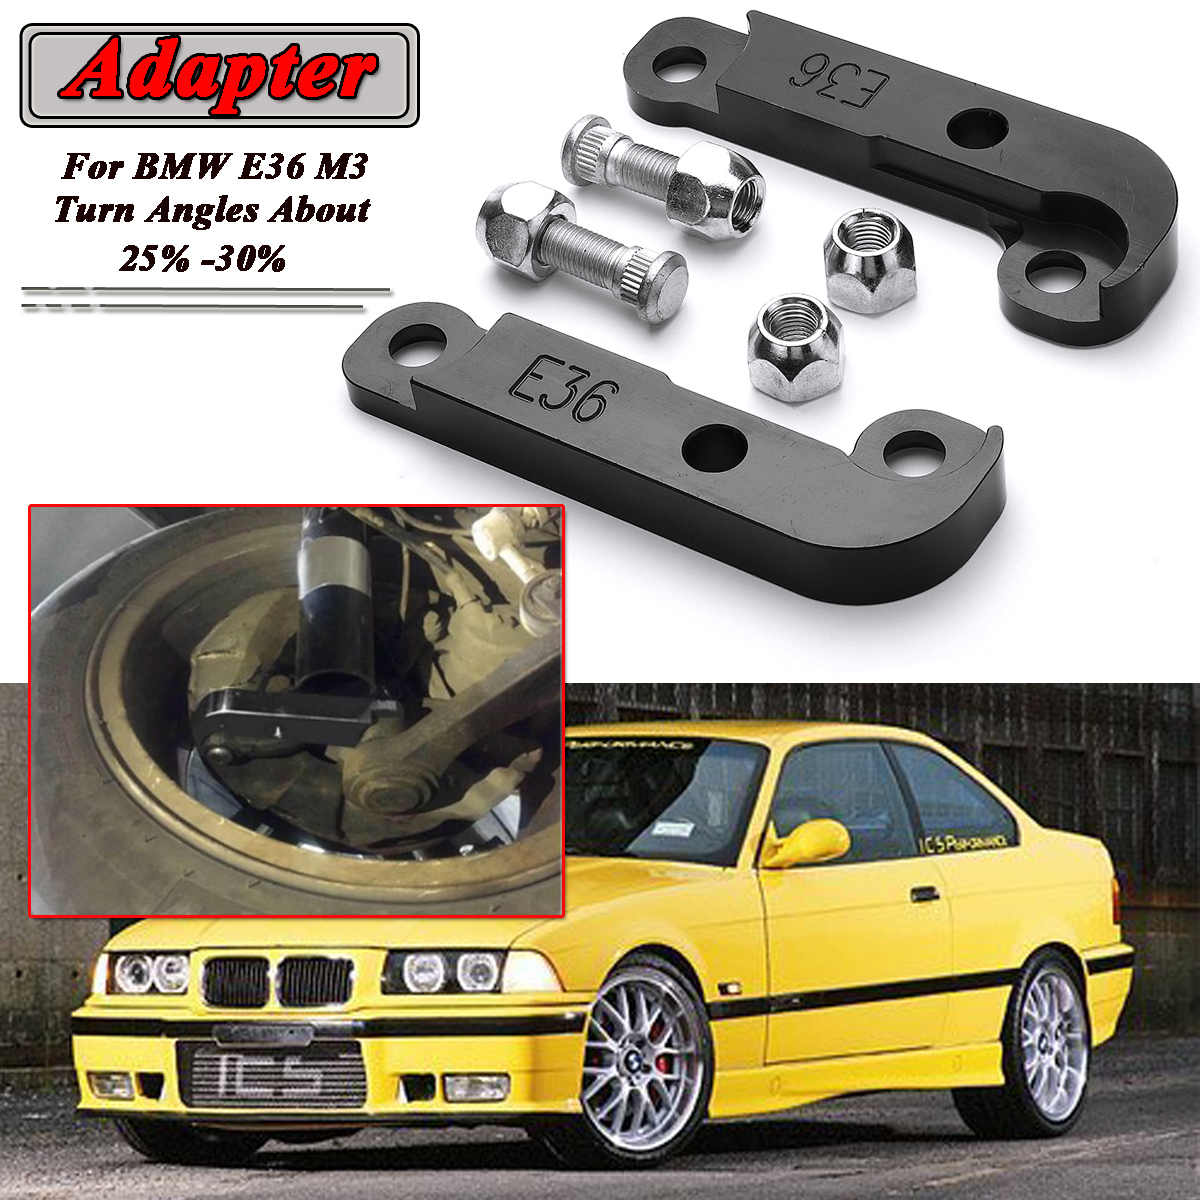 hight resolution of 2pcs red black adapter increasing turn angles about 25 30 drift lock kit for bmw e36 m3 tuning drift power adapters mounting in axle parts from